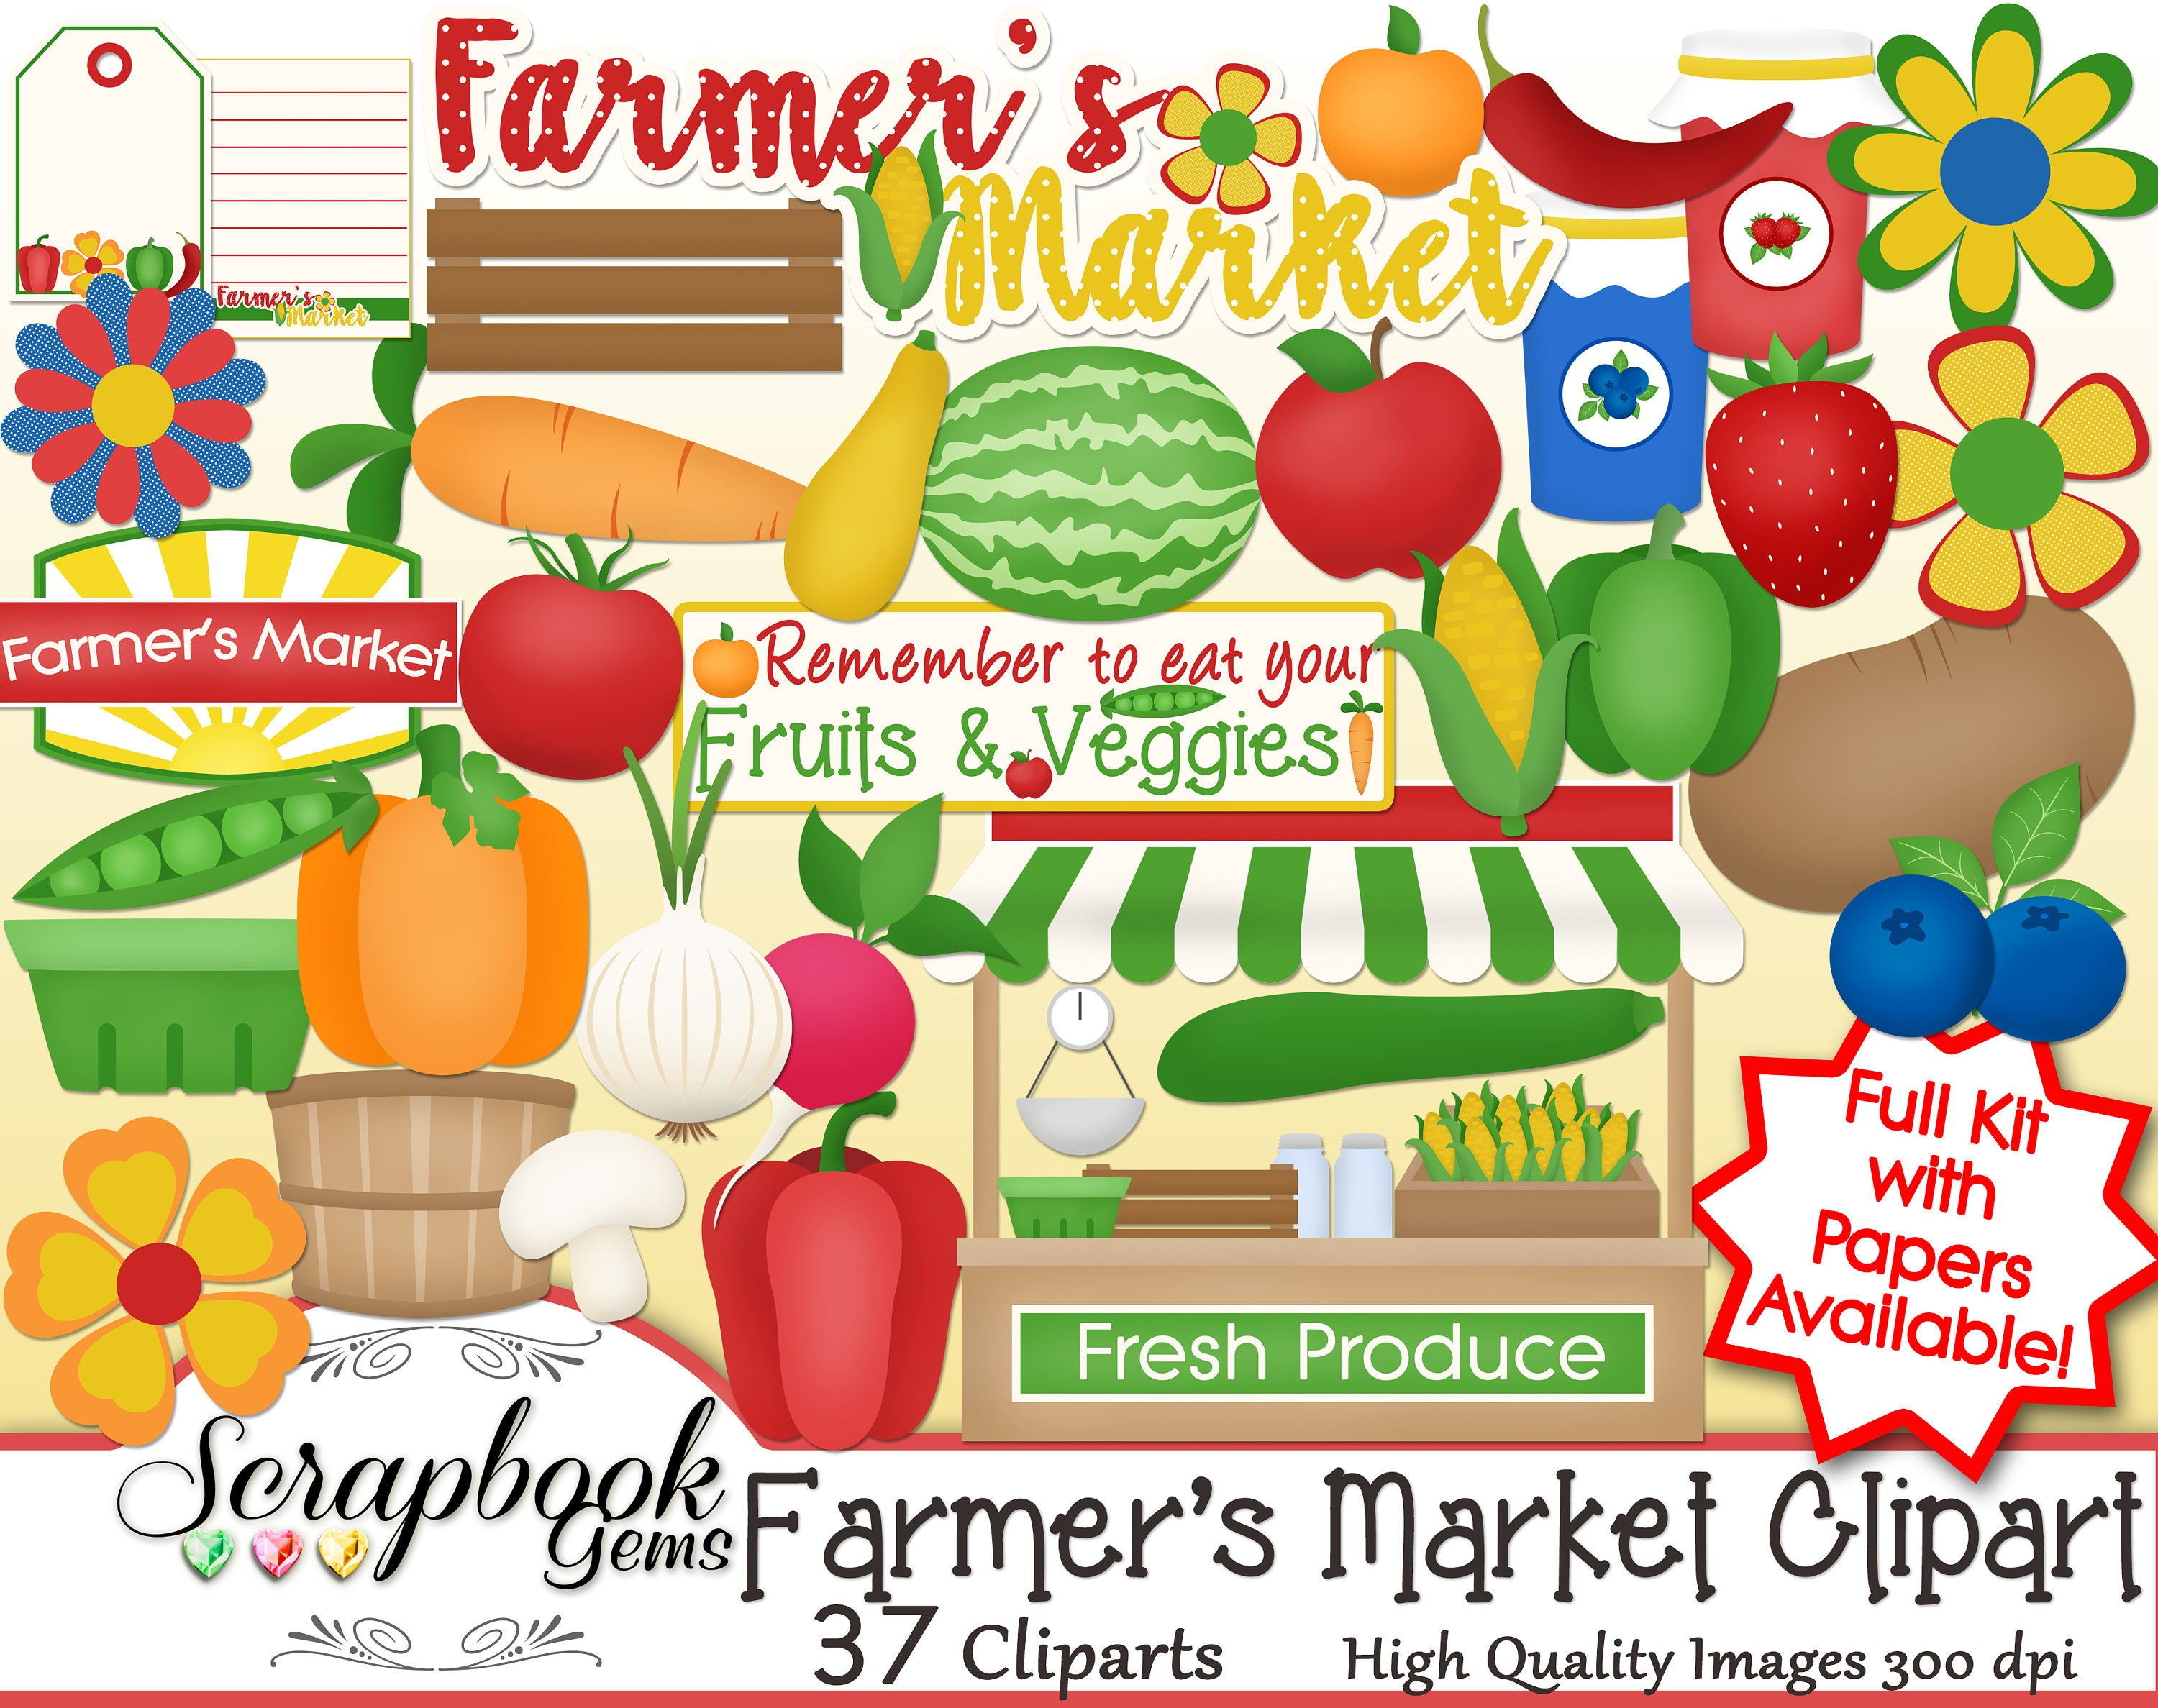 supermarket or farmers market essay How to price your product at a farmers' market according people with knowledge about current food markets, the small local venues known as farmers' markets are quickly taking off these local markets are providing fresh foods for many.